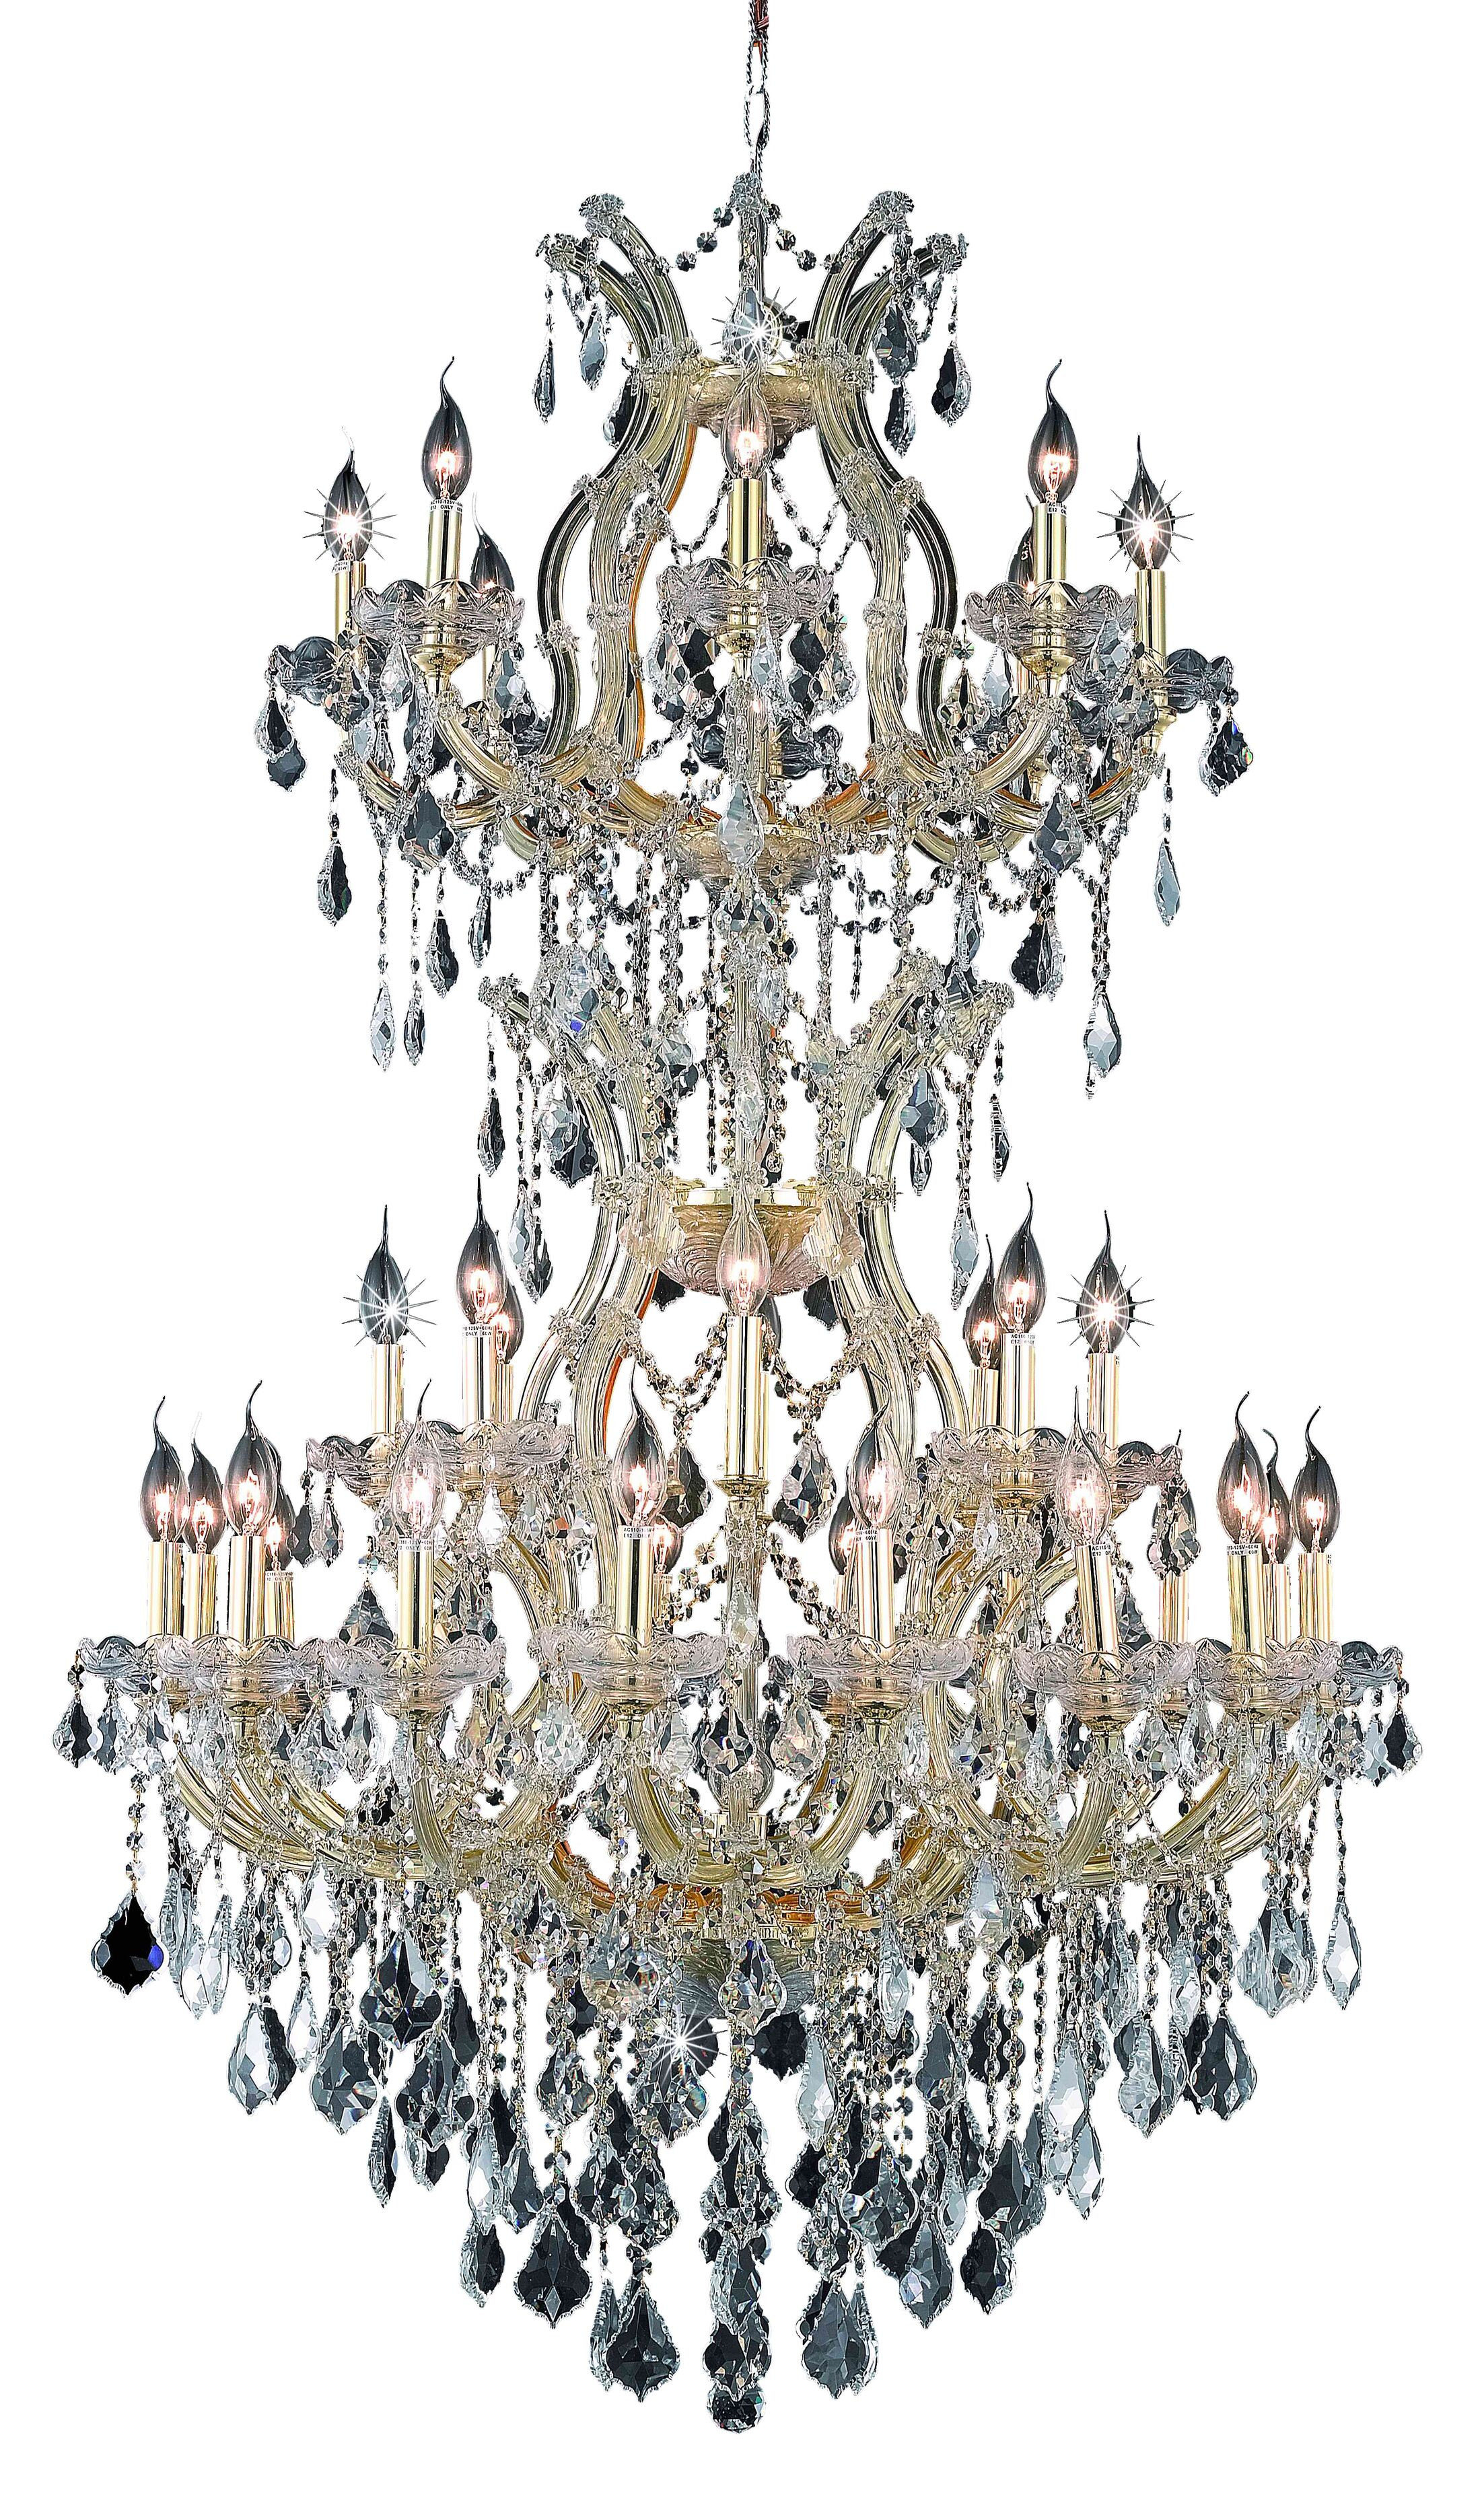 Regina Traditional 34-Light Candle Style Chandelier Finish / Crystal Finish / Crystal Trim: Chrome / Crystal (Clear) / Royal Cut